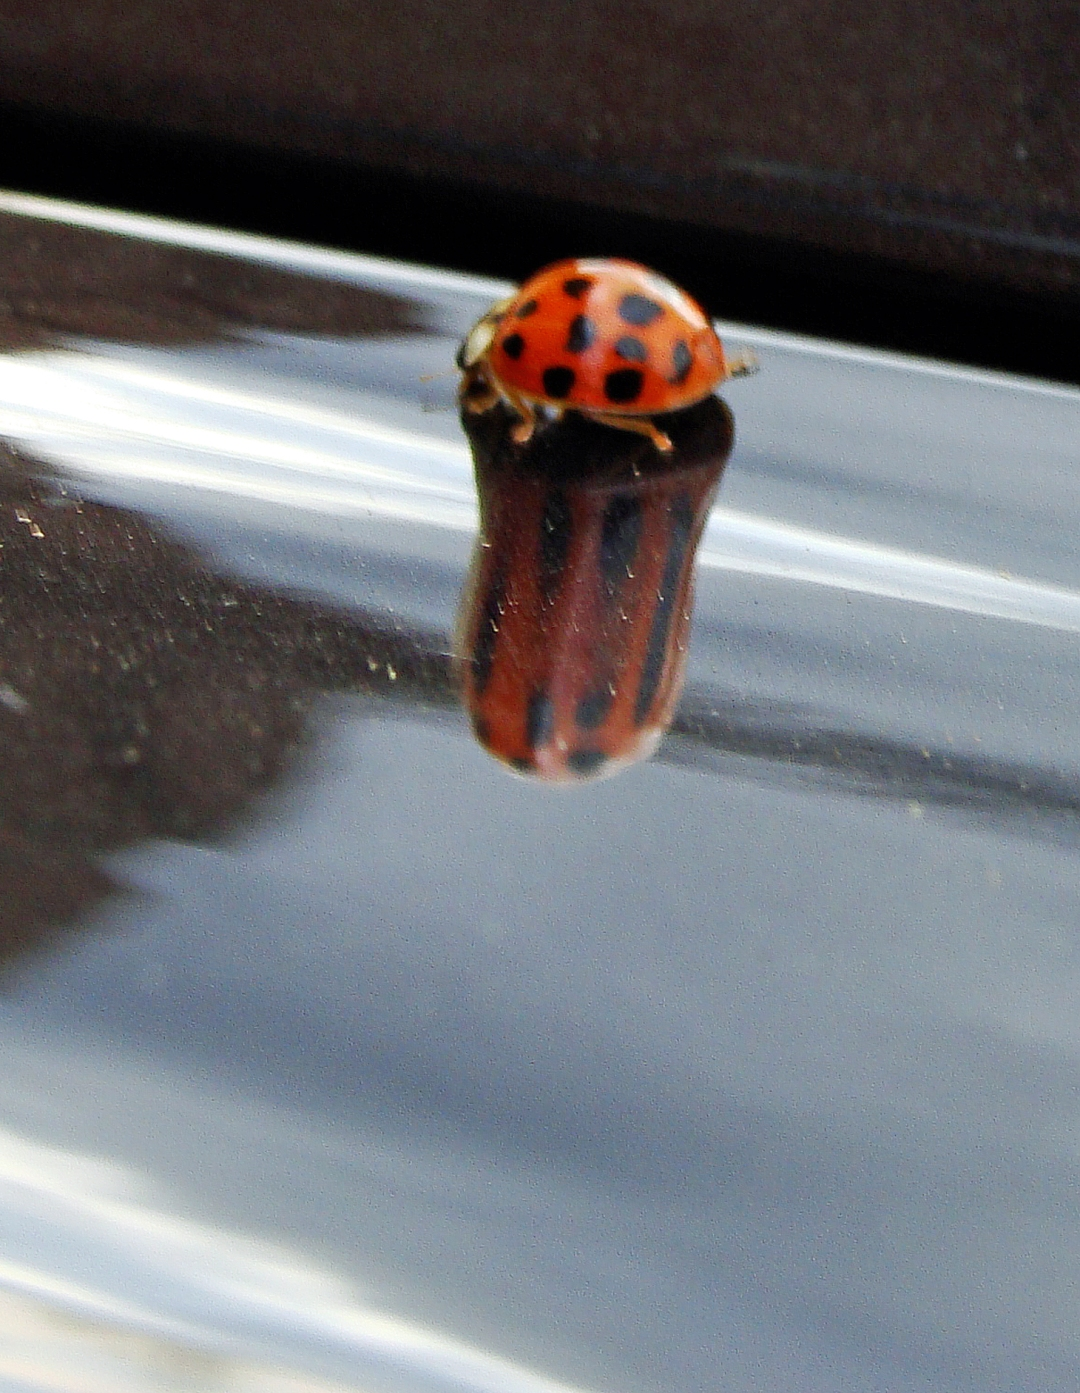 STRETCHED -- Ladybug's  reflection is stretched in a curve of a car's hood.